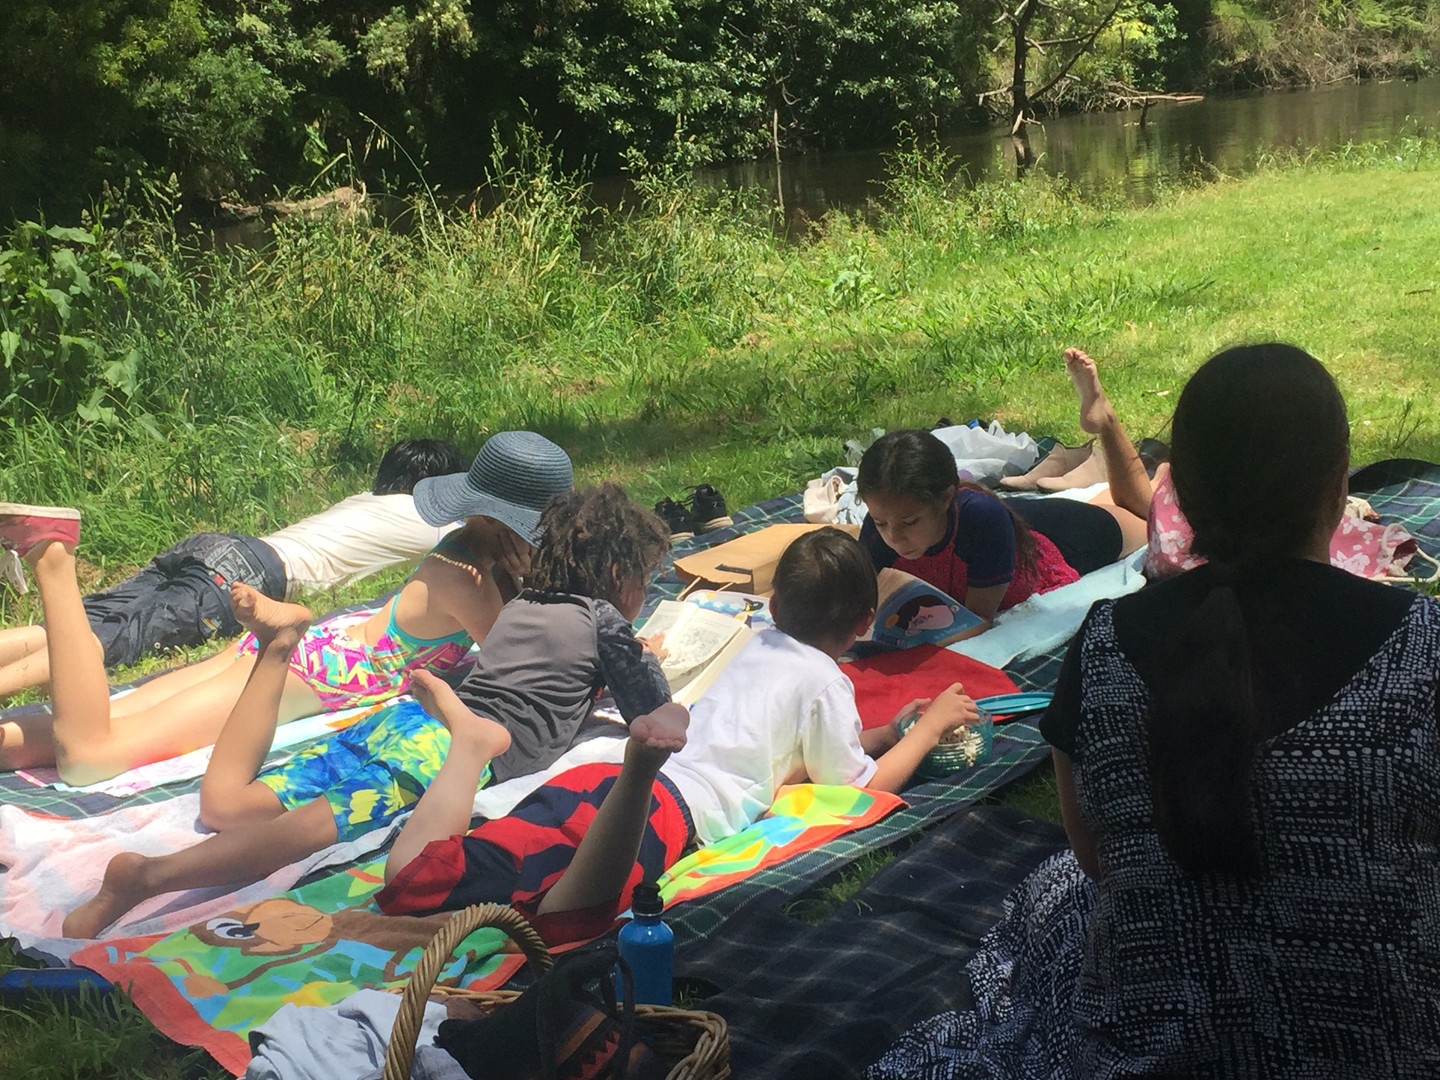 READING BY THE RIVER